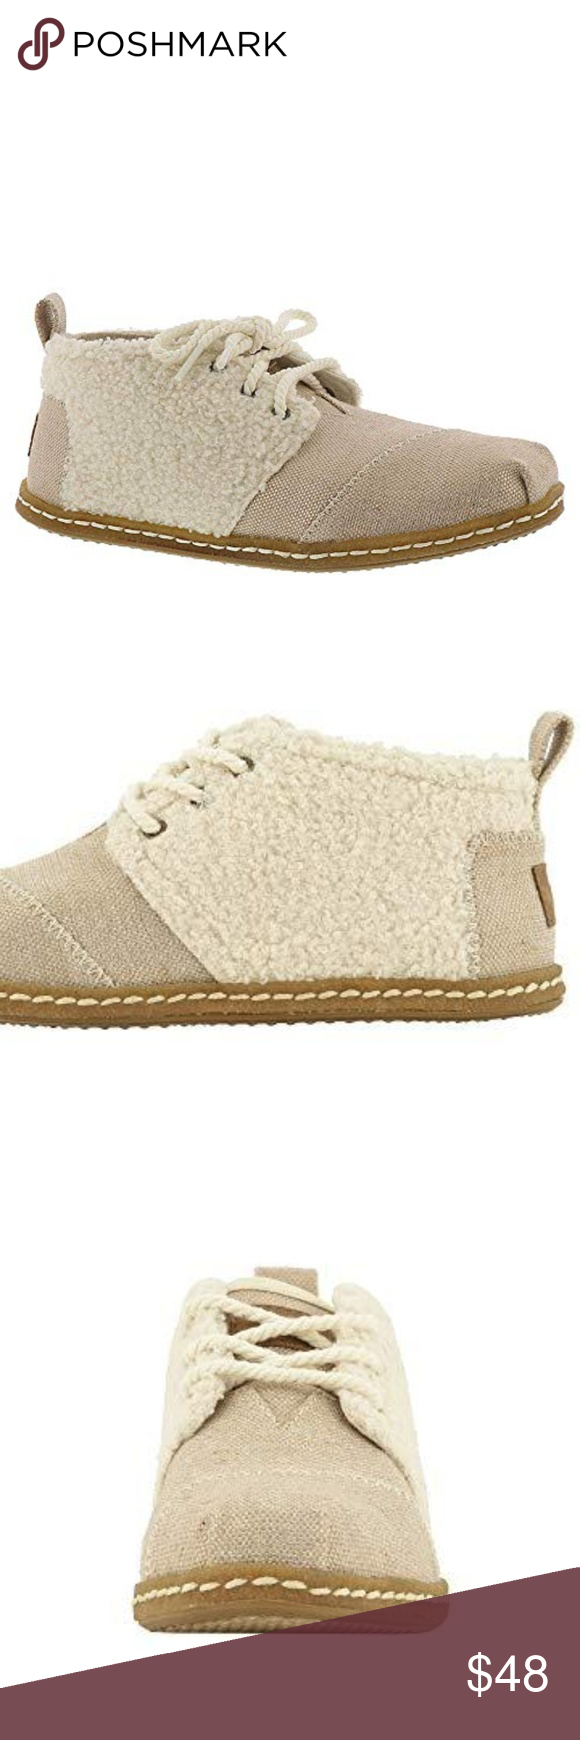 NEW Toms faux shearling shoes sz 65